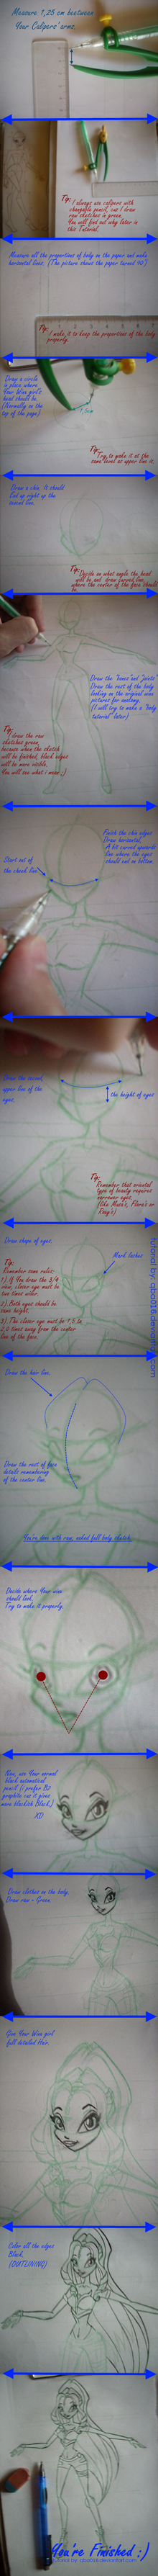 Drawing Winx  step by step by Qba016